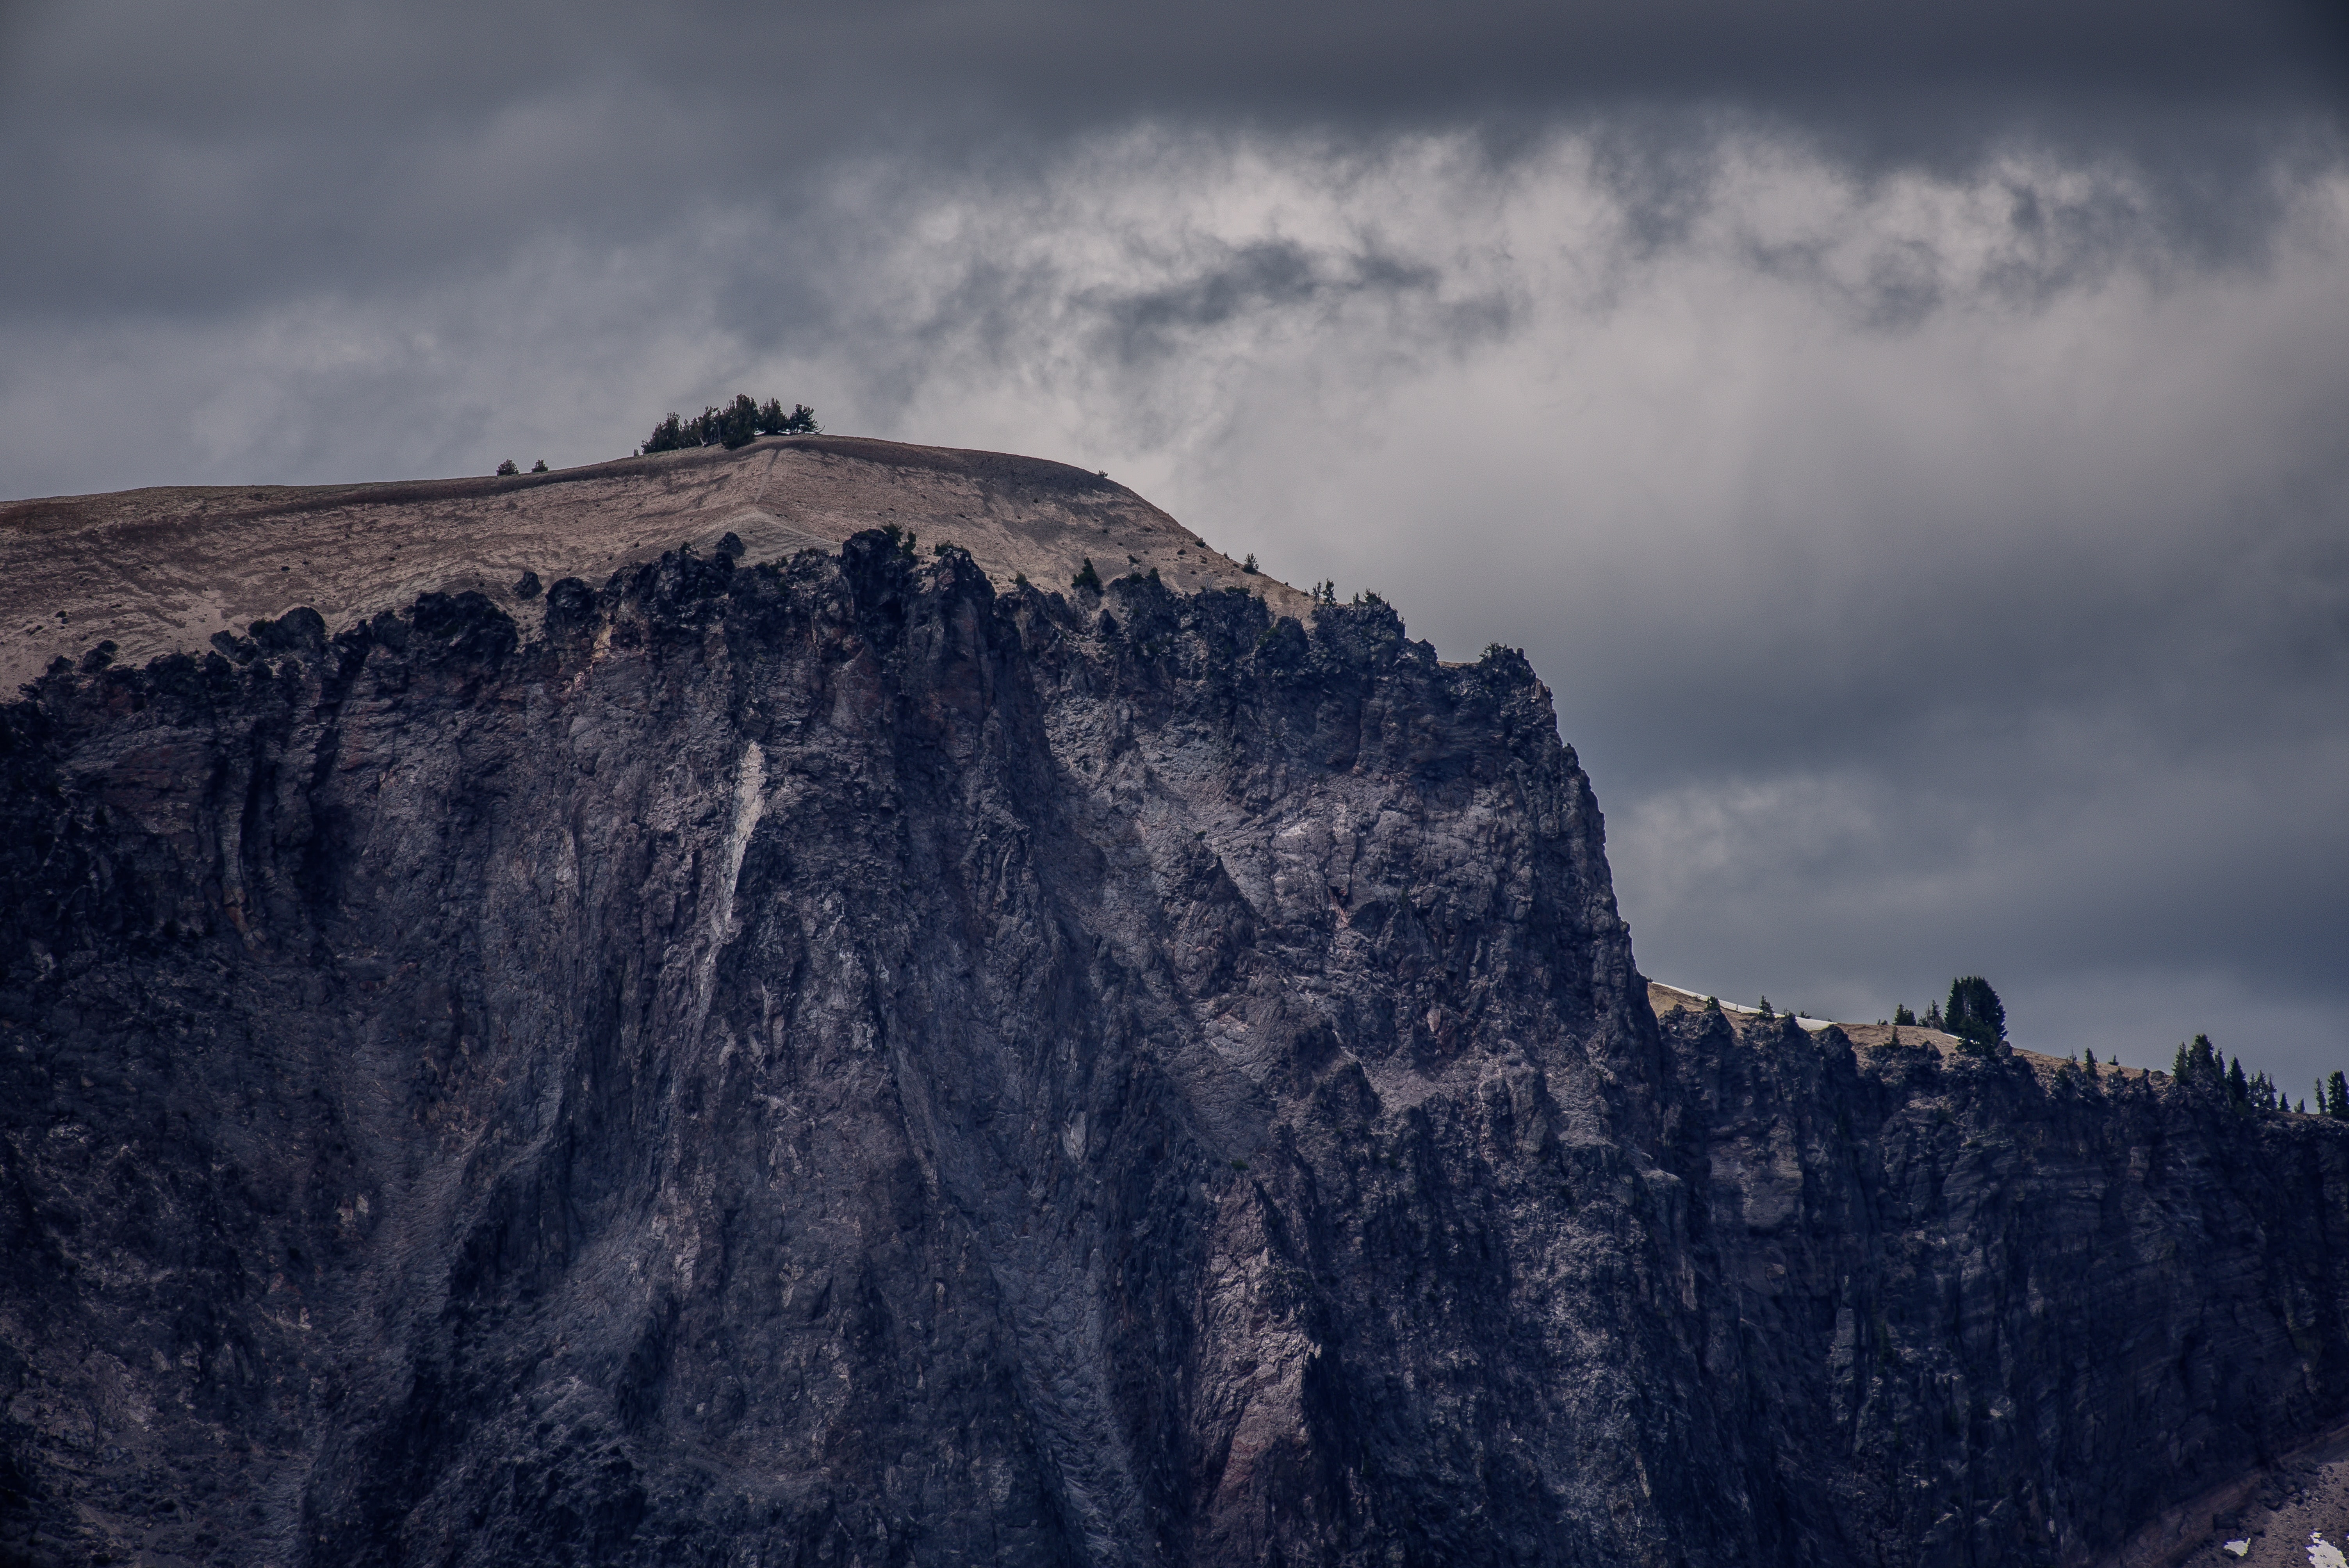 A mountain cliff in the clouds on a gloomy day at Crater Lake